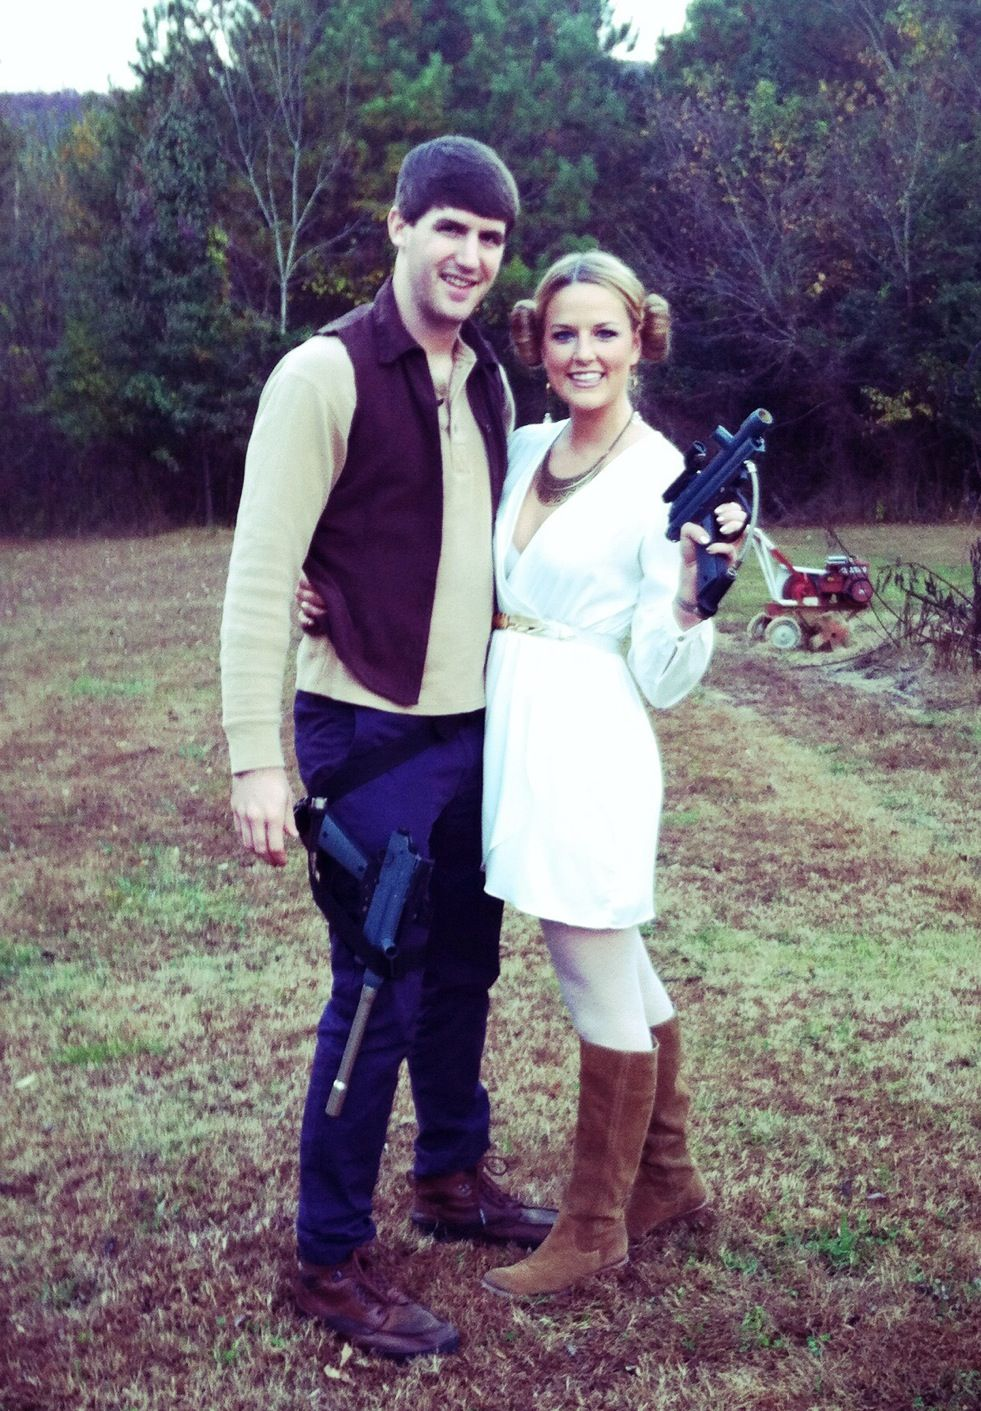 easy peasy Han Solo u0026 Princess Leia costumes...white dress sock buns paintball guns and a goodwill vest  sc 1 st  Pinterest : princess leia han solo costumes  - Germanpascual.Com